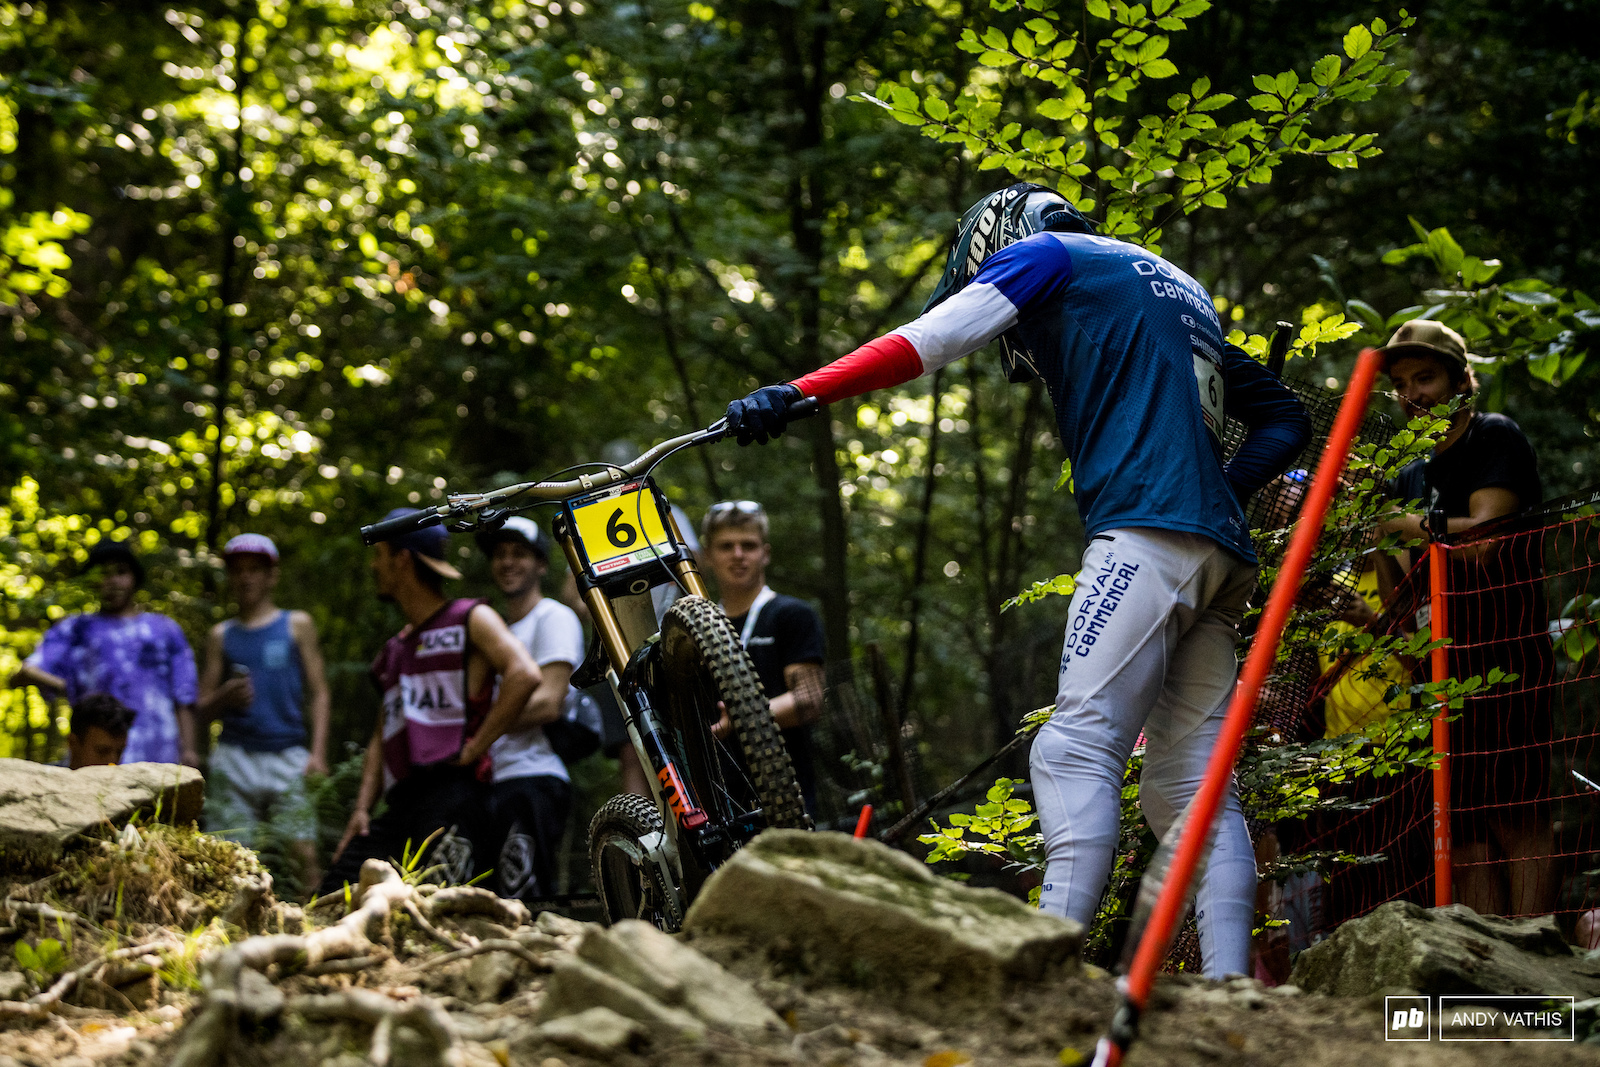 Bad luck for Benoit Coulanges as he blows out a tire right above the rock garden.